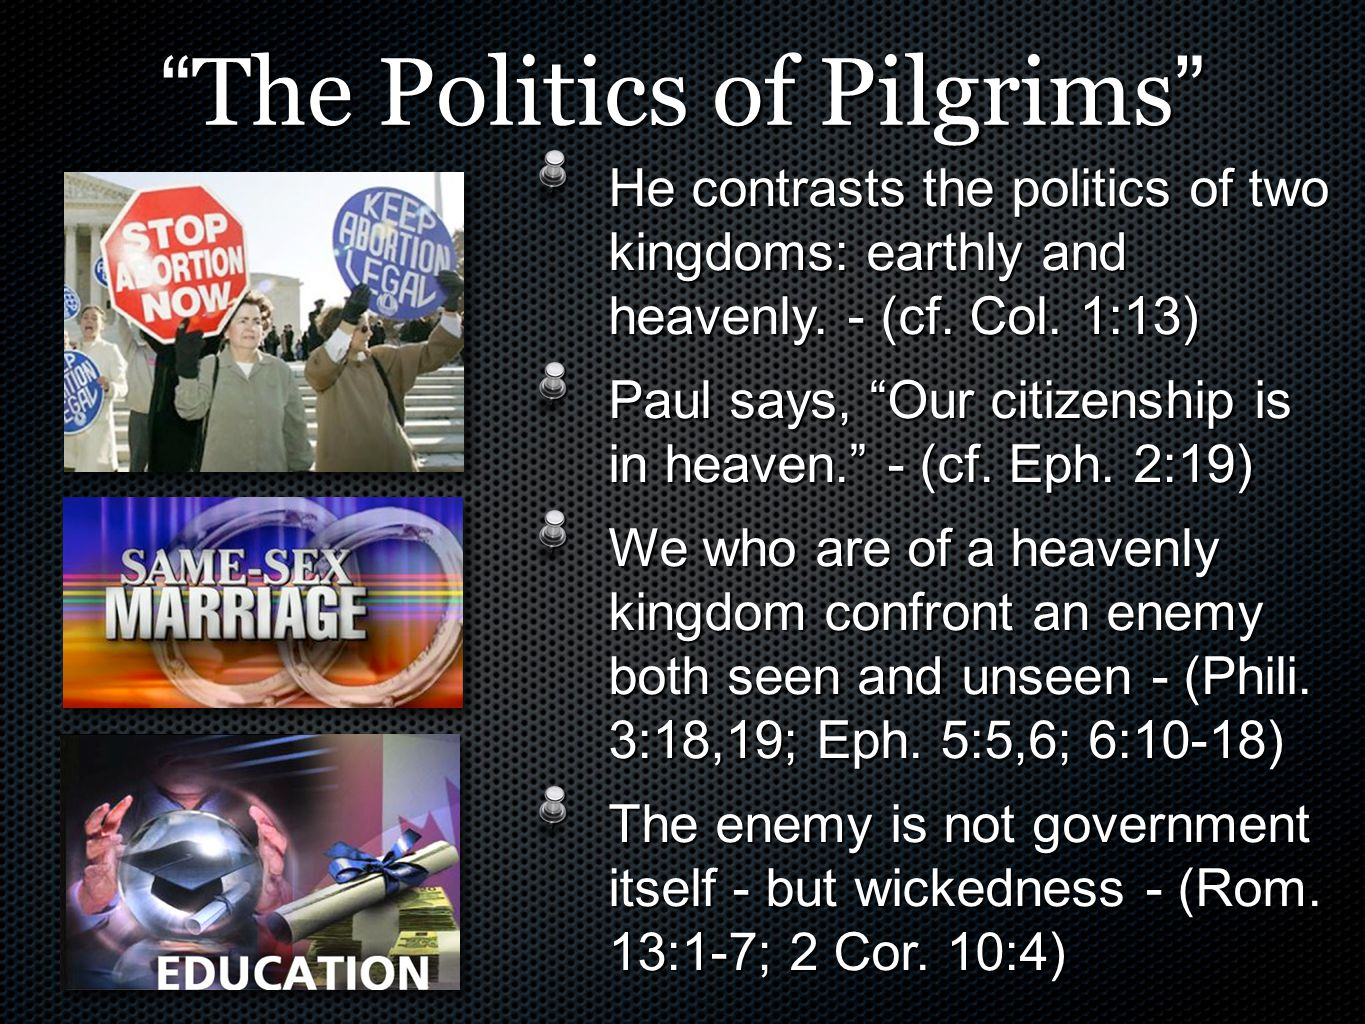 """"""" The Politics of Pilgrims """" He contrasts the politics of two kingdoms: earthly and heavenly. - (cf. Col. 1:13) Paul says, """"Our citizenship is in heav"""